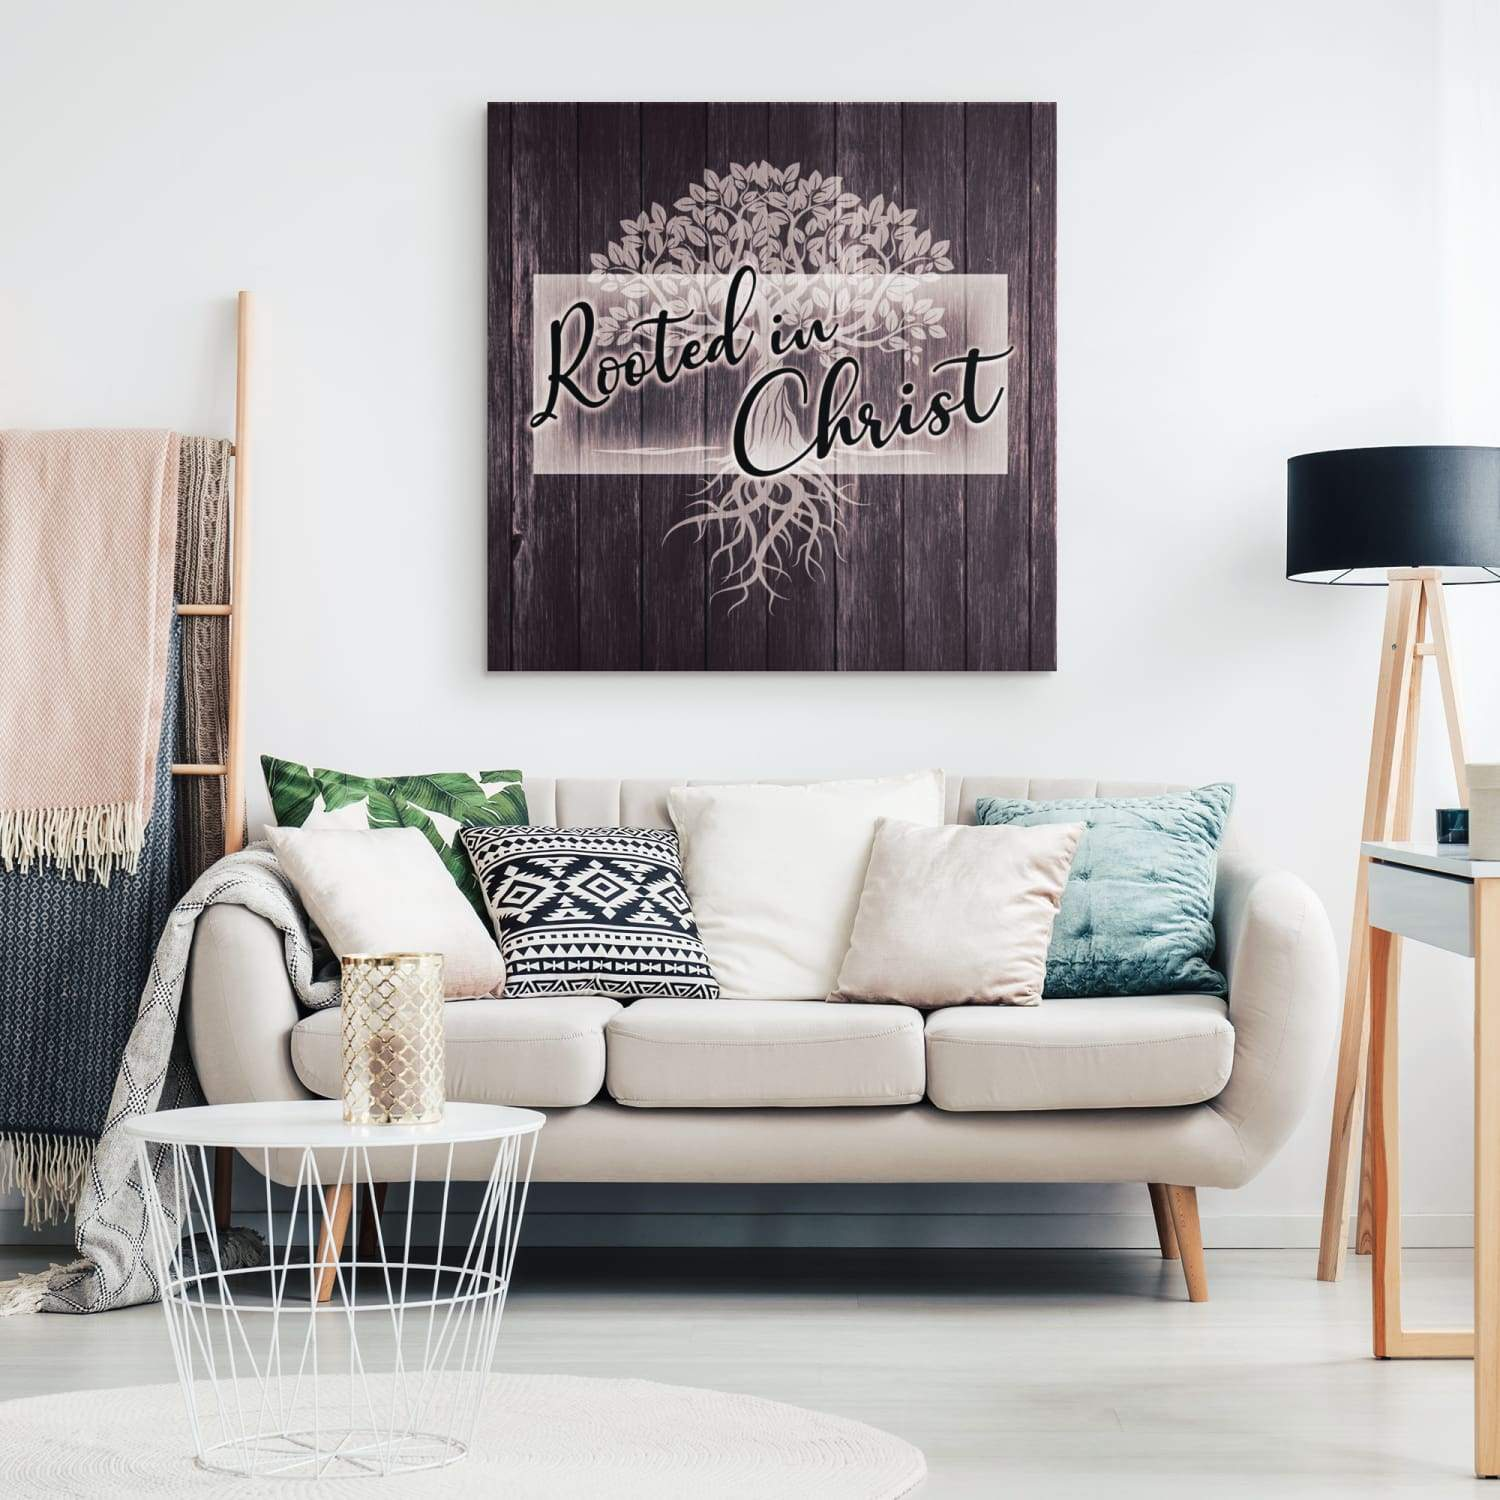 Rooted in Christ canvas wall art - GnWarriors Clothing